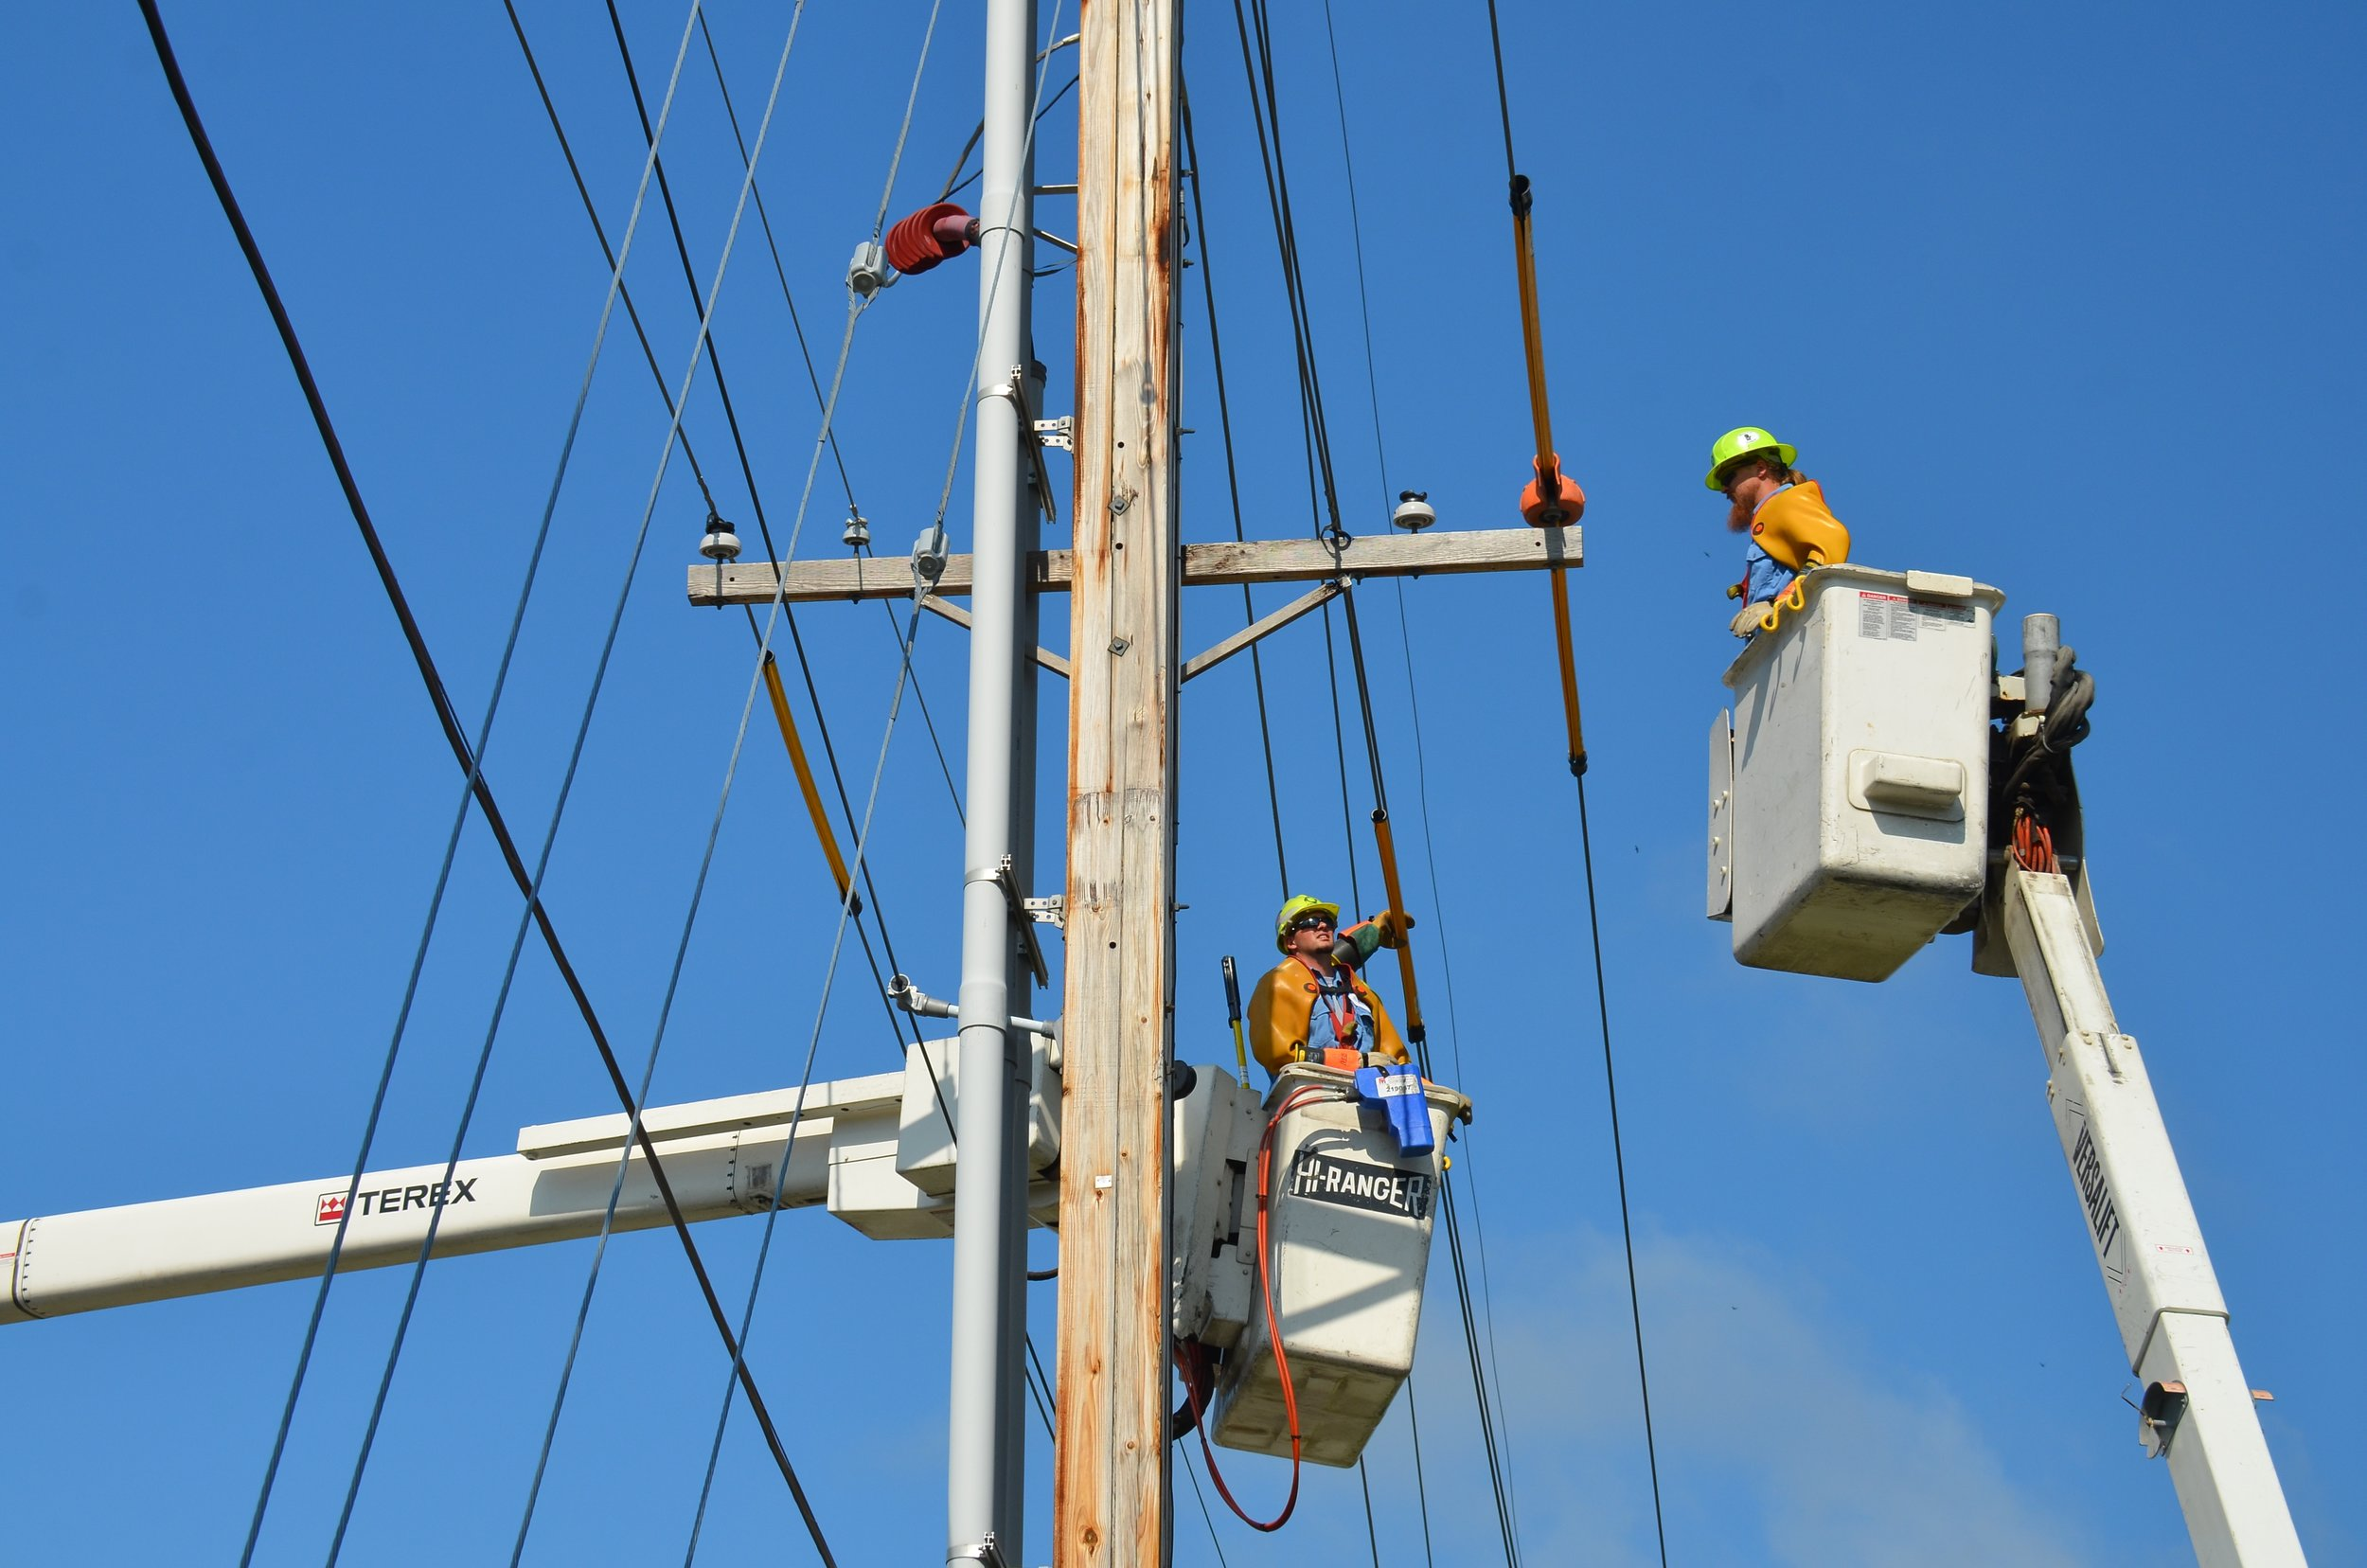 utility linemen workers in cherry picker